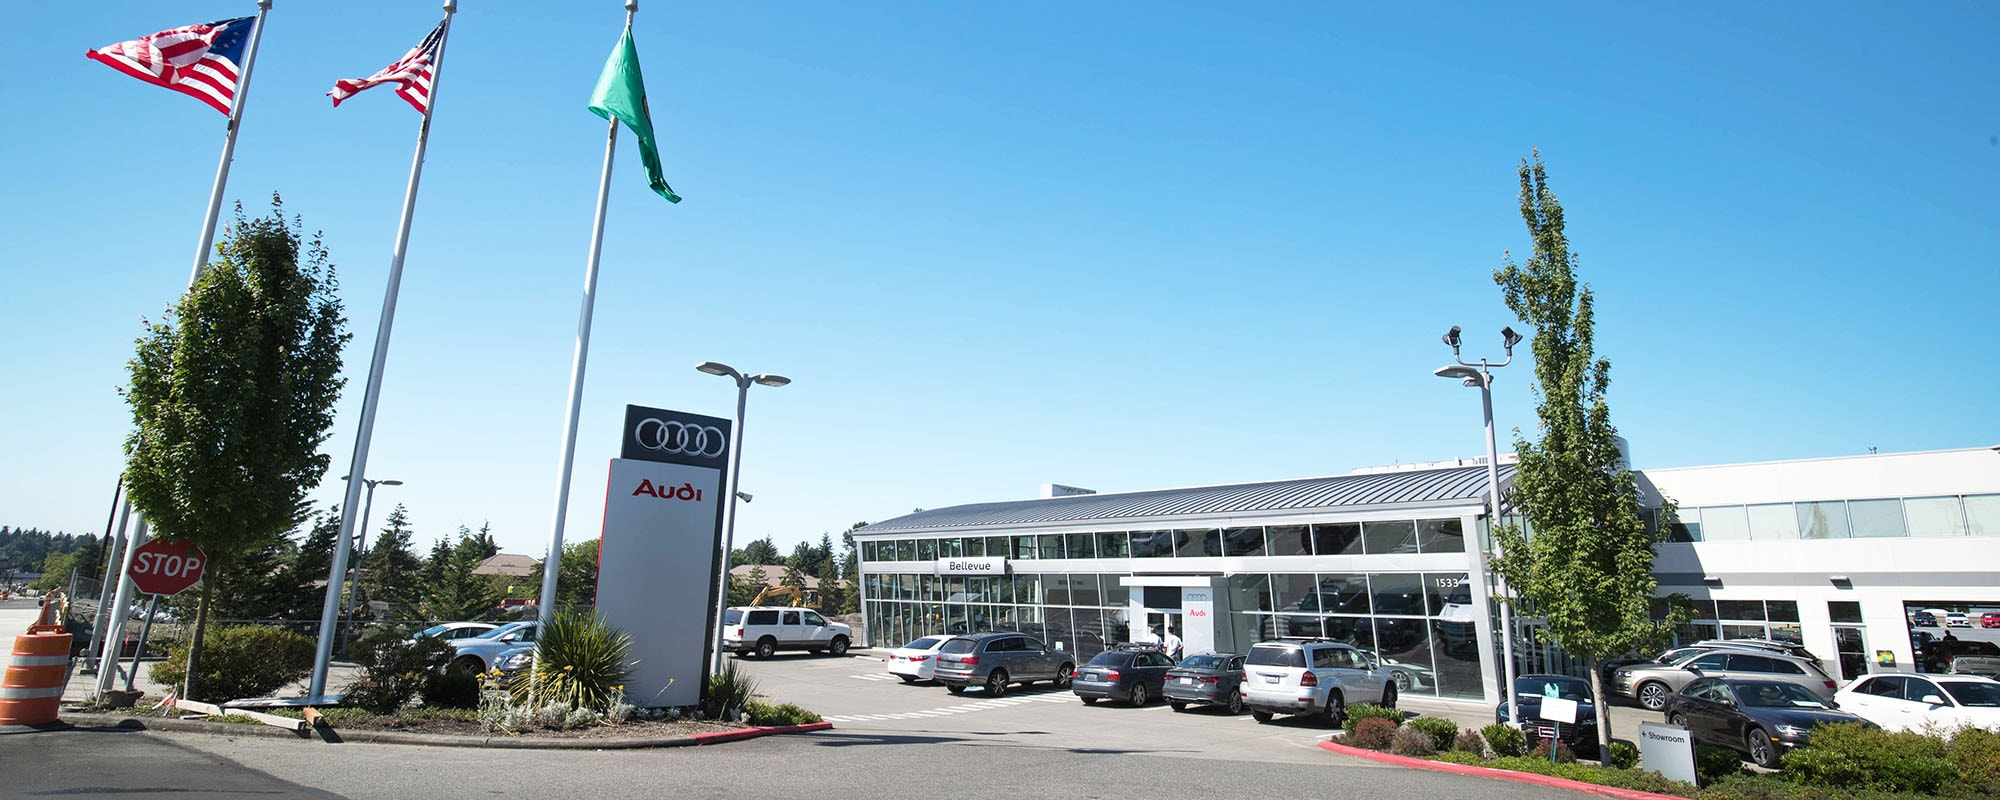 Outside view of Audi Bellevue